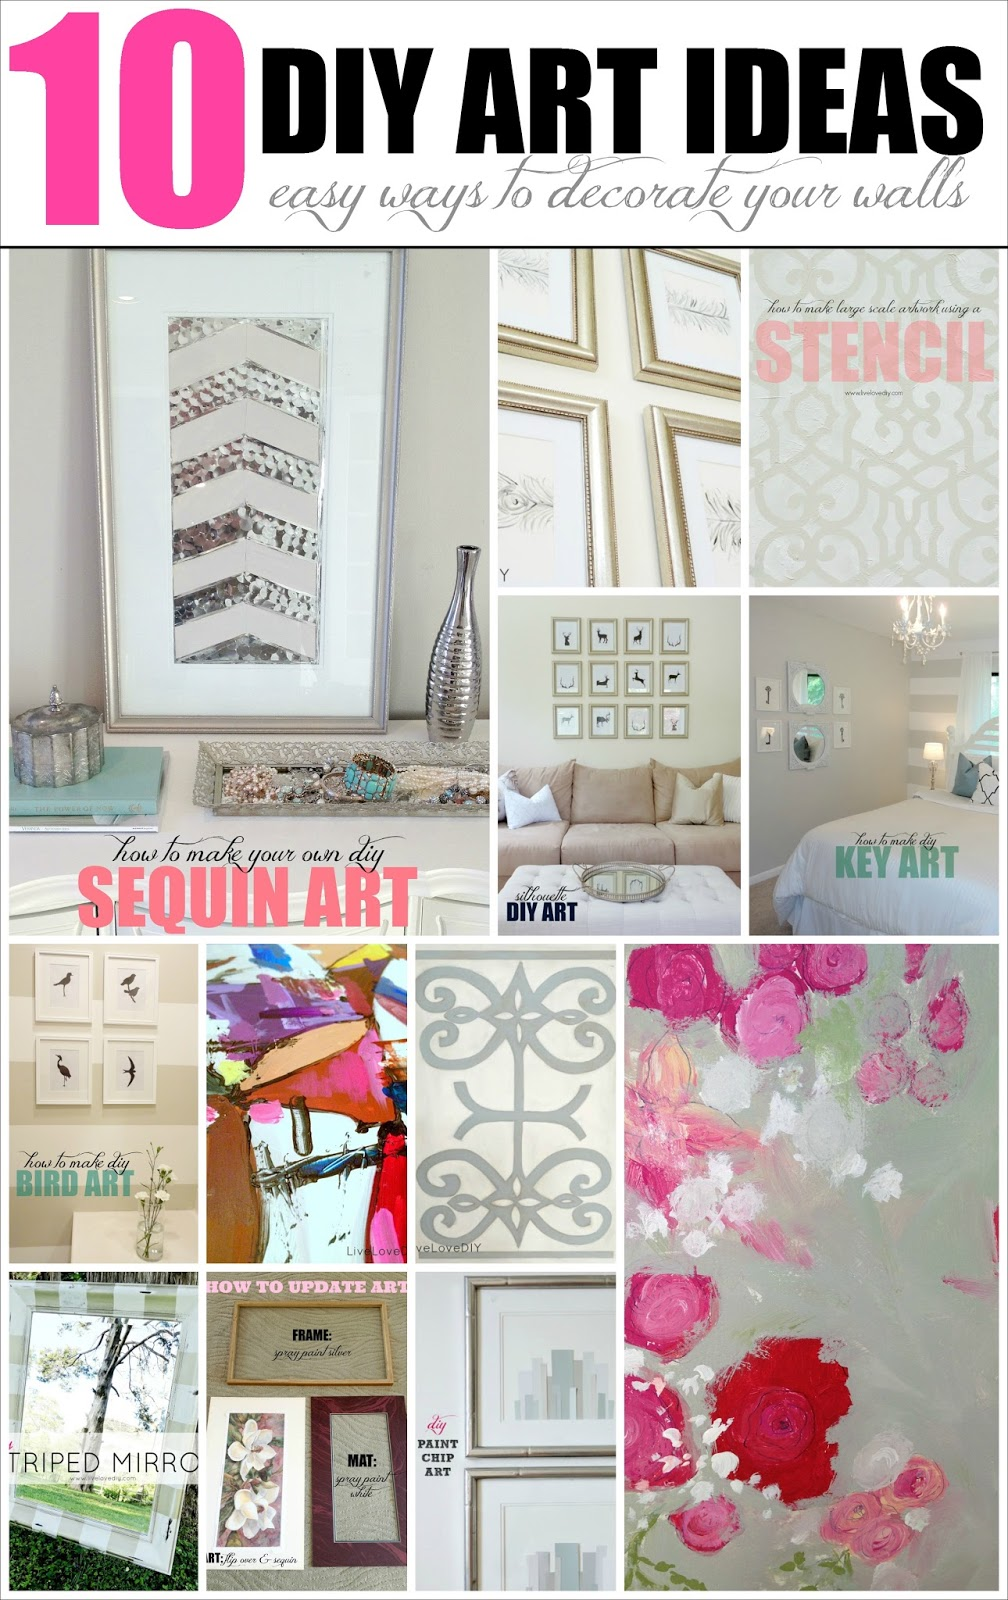 Livelovediy 10 diy art ideas easy ways to decorate your walls follow solutioingenieria Image collections